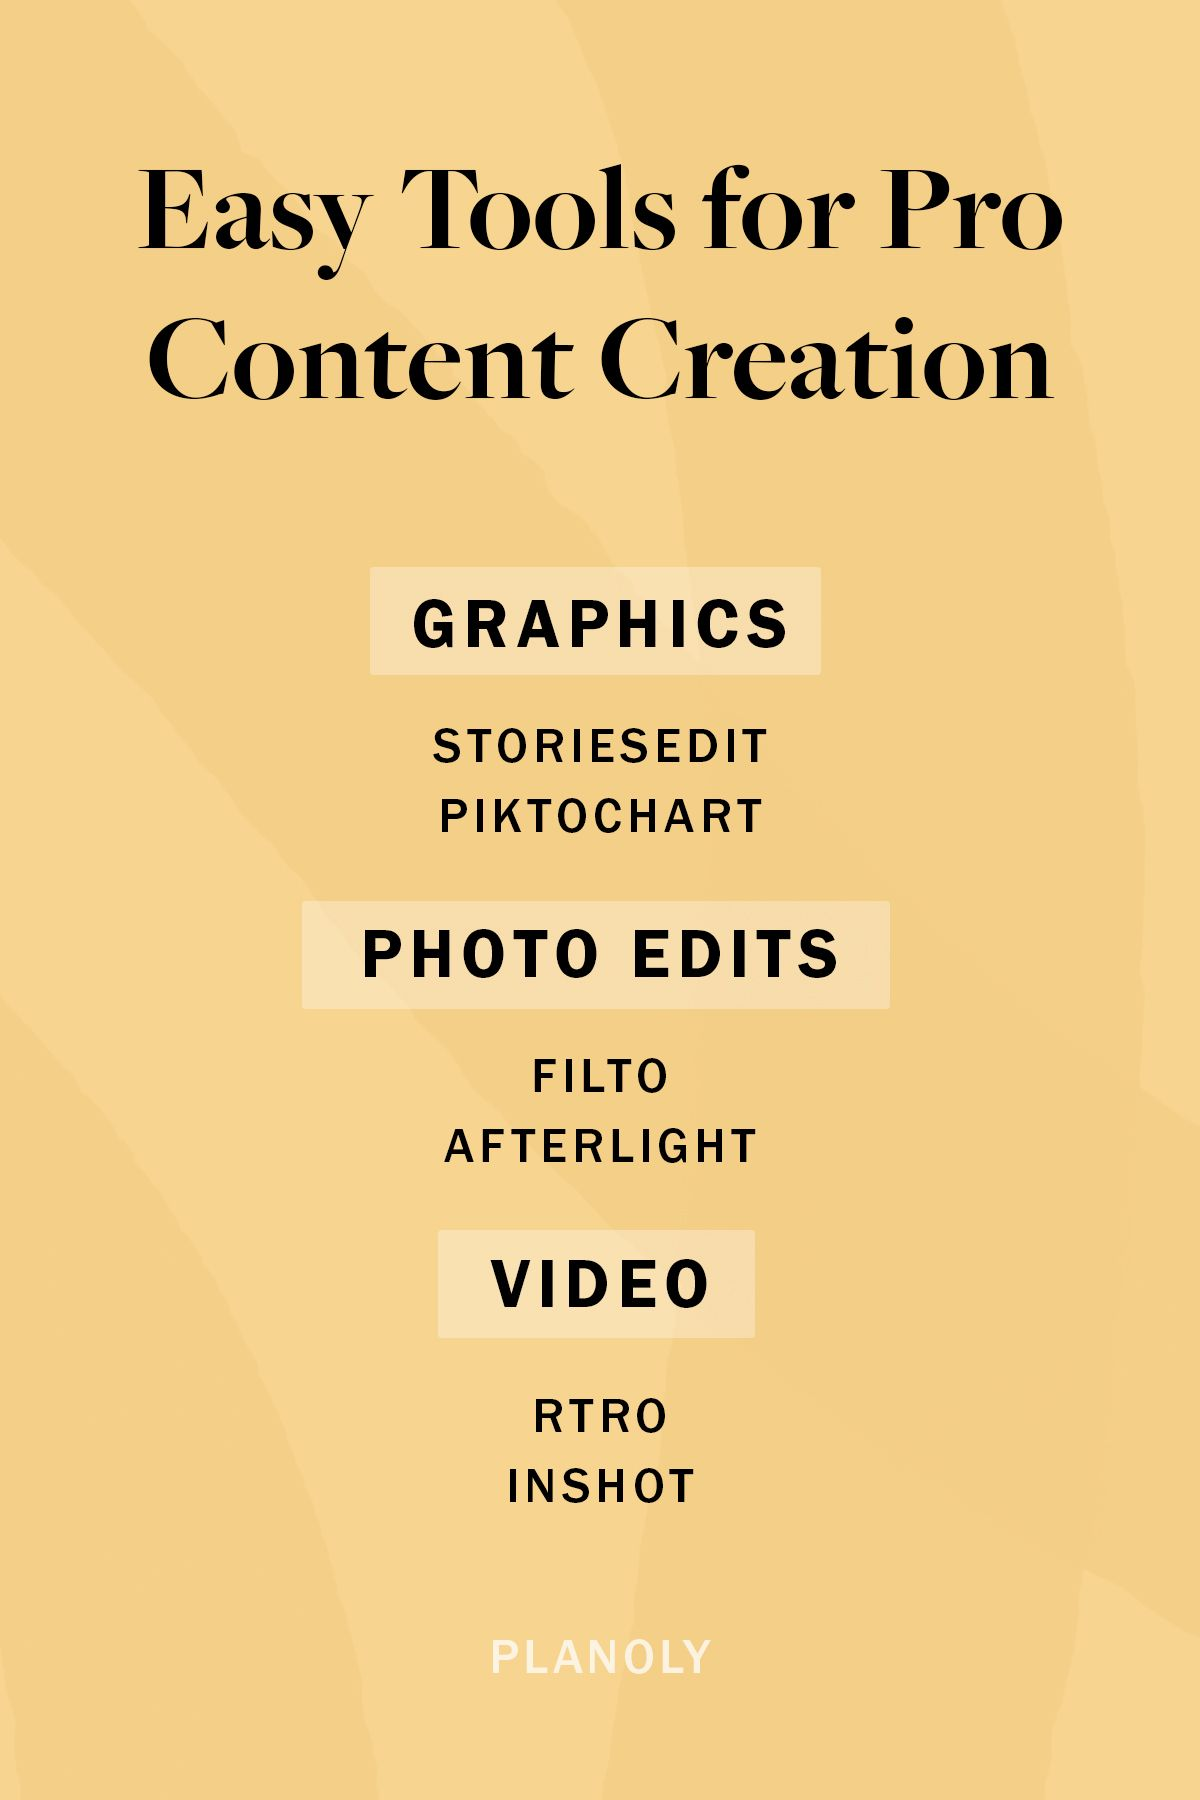 PLANOLY-Blog Post-Pro Tips for Content Creation-Image 2